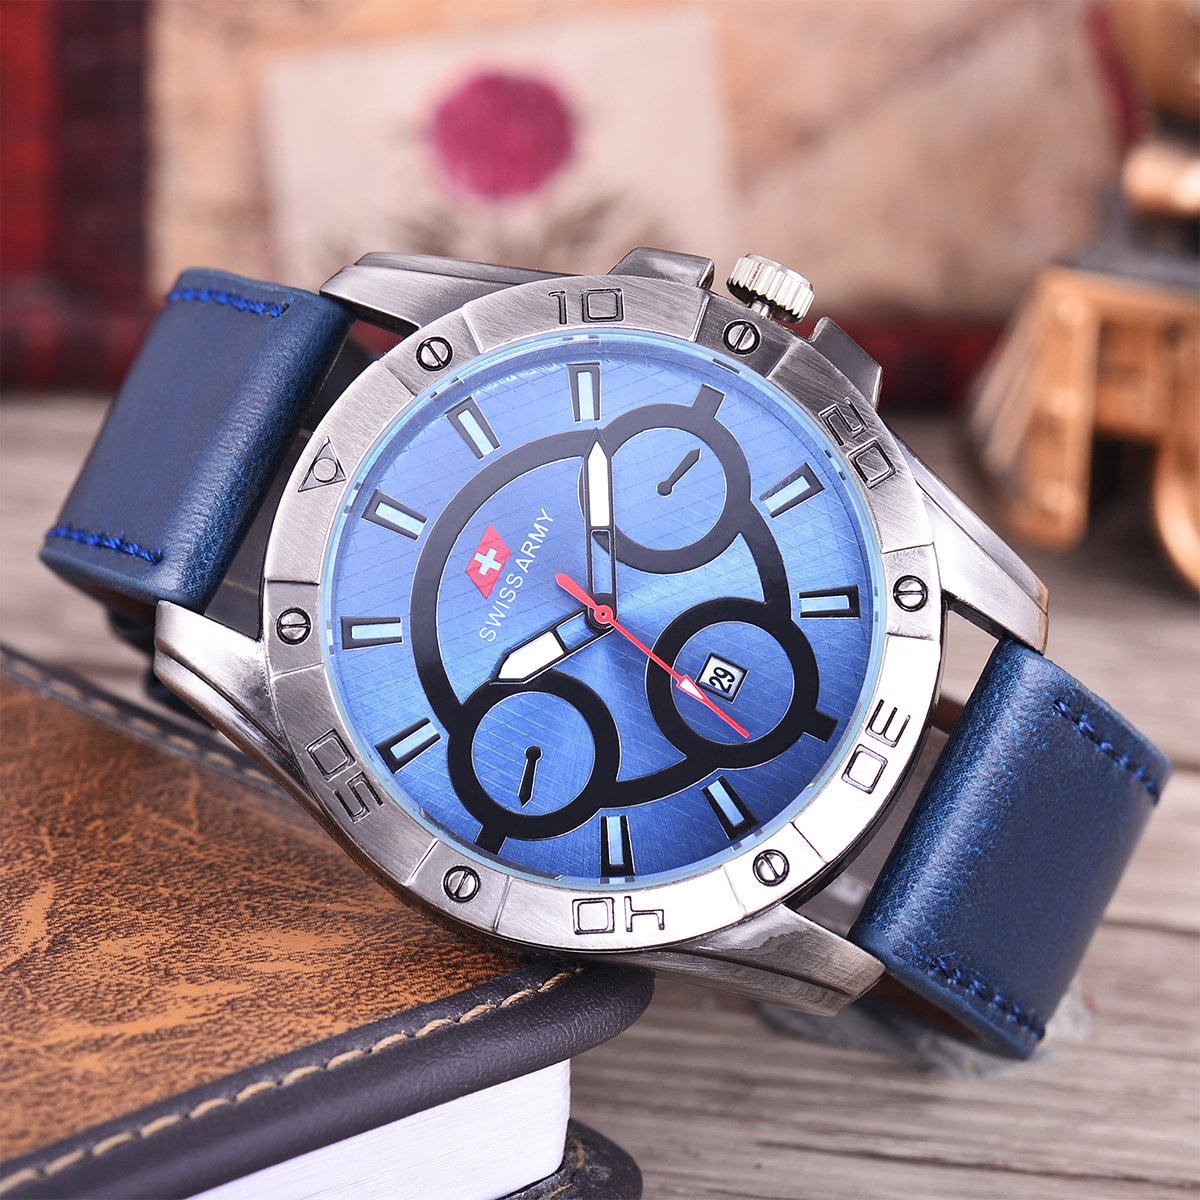 Swiss Army Jam Tangan Pria - Body Black - Blue Dial - Blue .